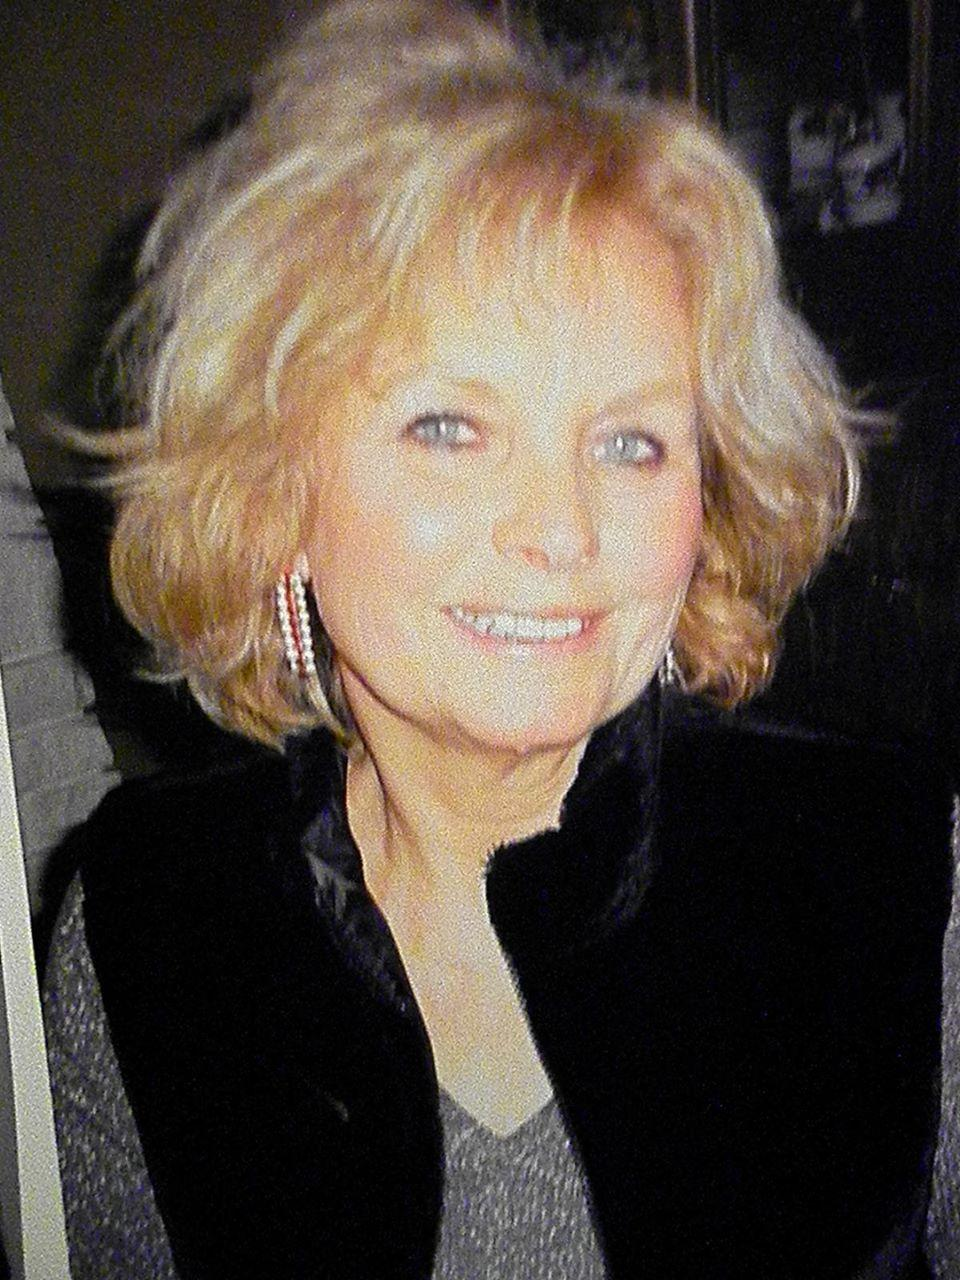 glendale mature singles Try online dating and discover an easy way to find your perfect match join us and meet amazing glendale singles for dating and serious relationships with cupidcom.